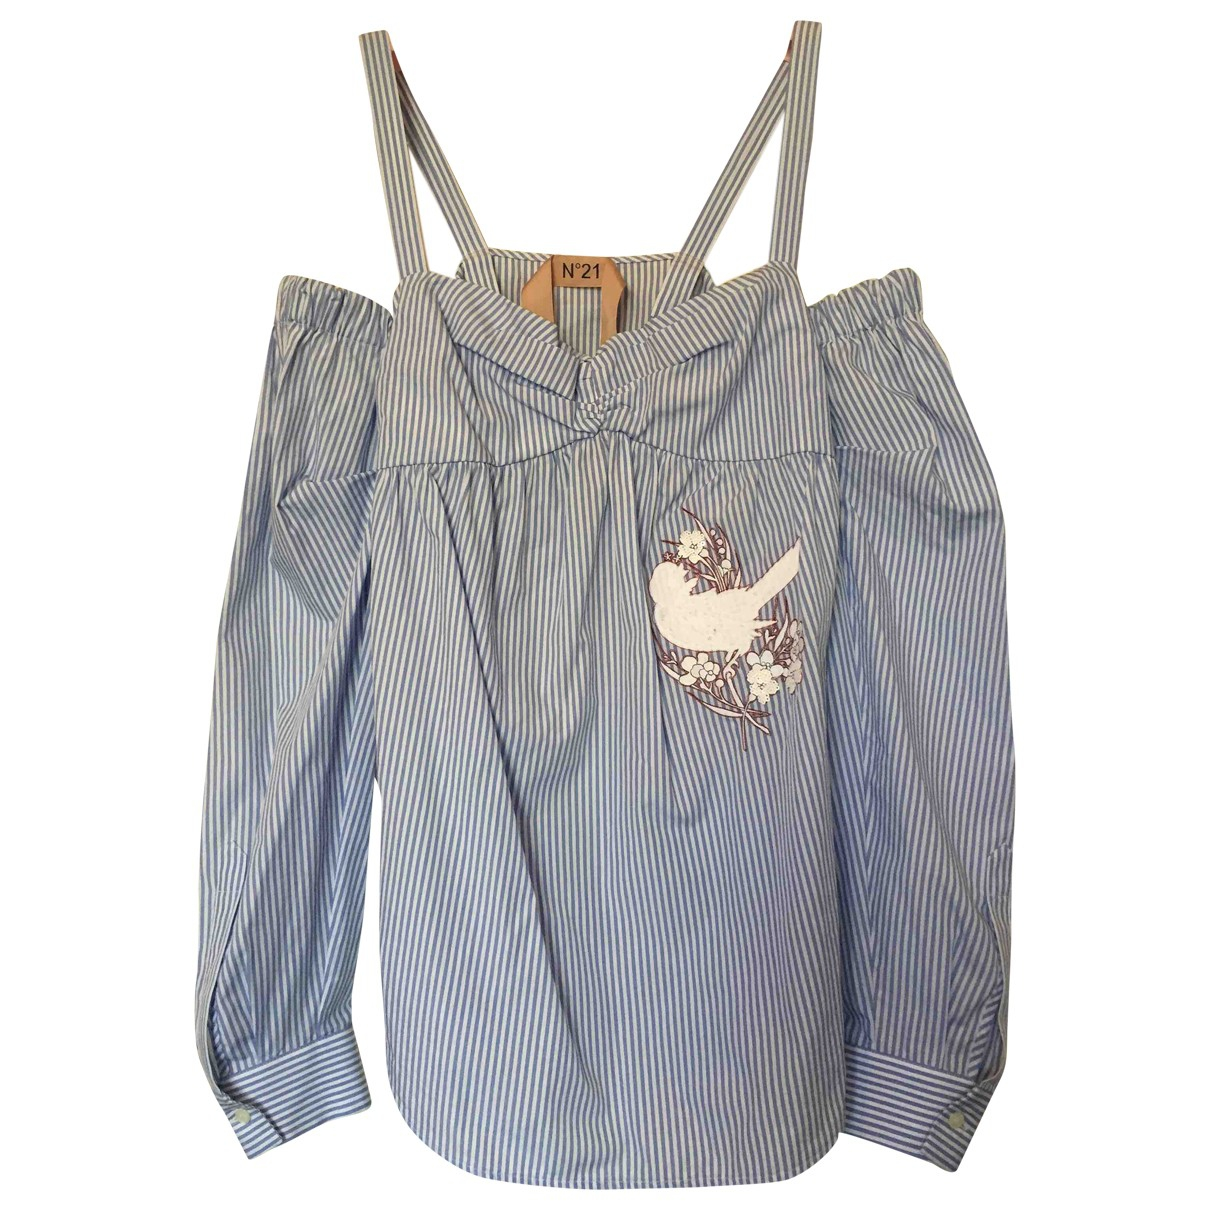 N°21 \N White Cotton  top for Women 38 IT